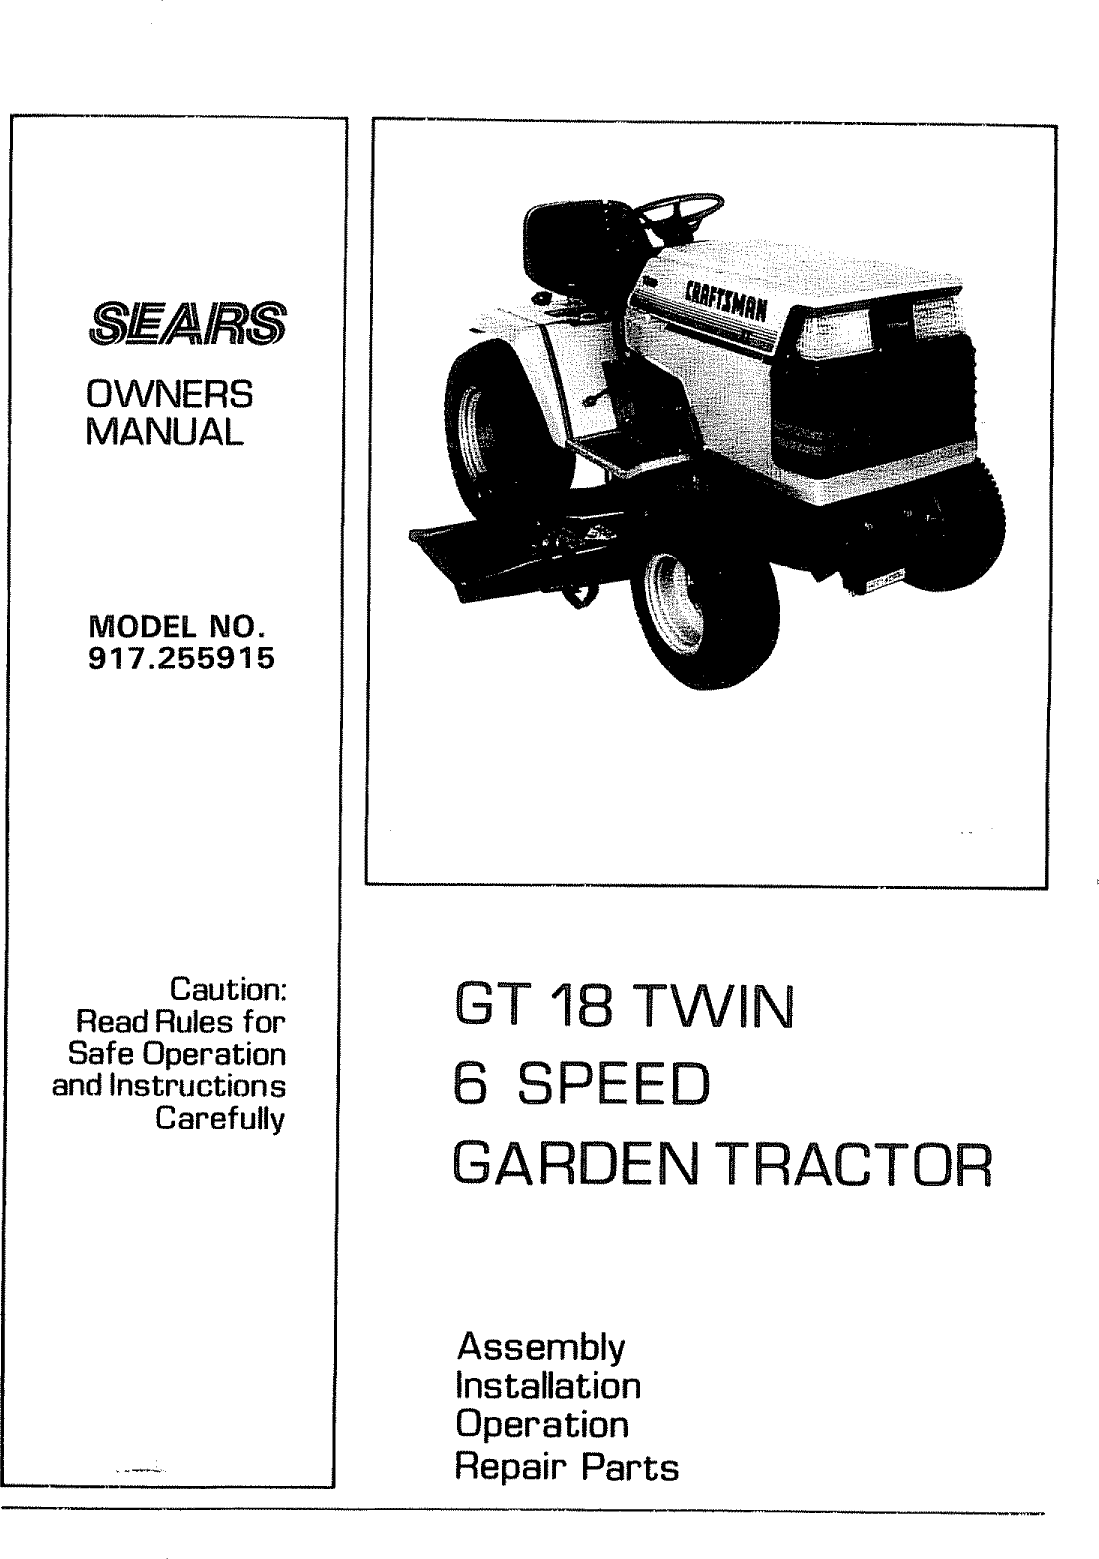 Craftsman 917255915 User Manual 6 SPEED GARDEN TRACTOR